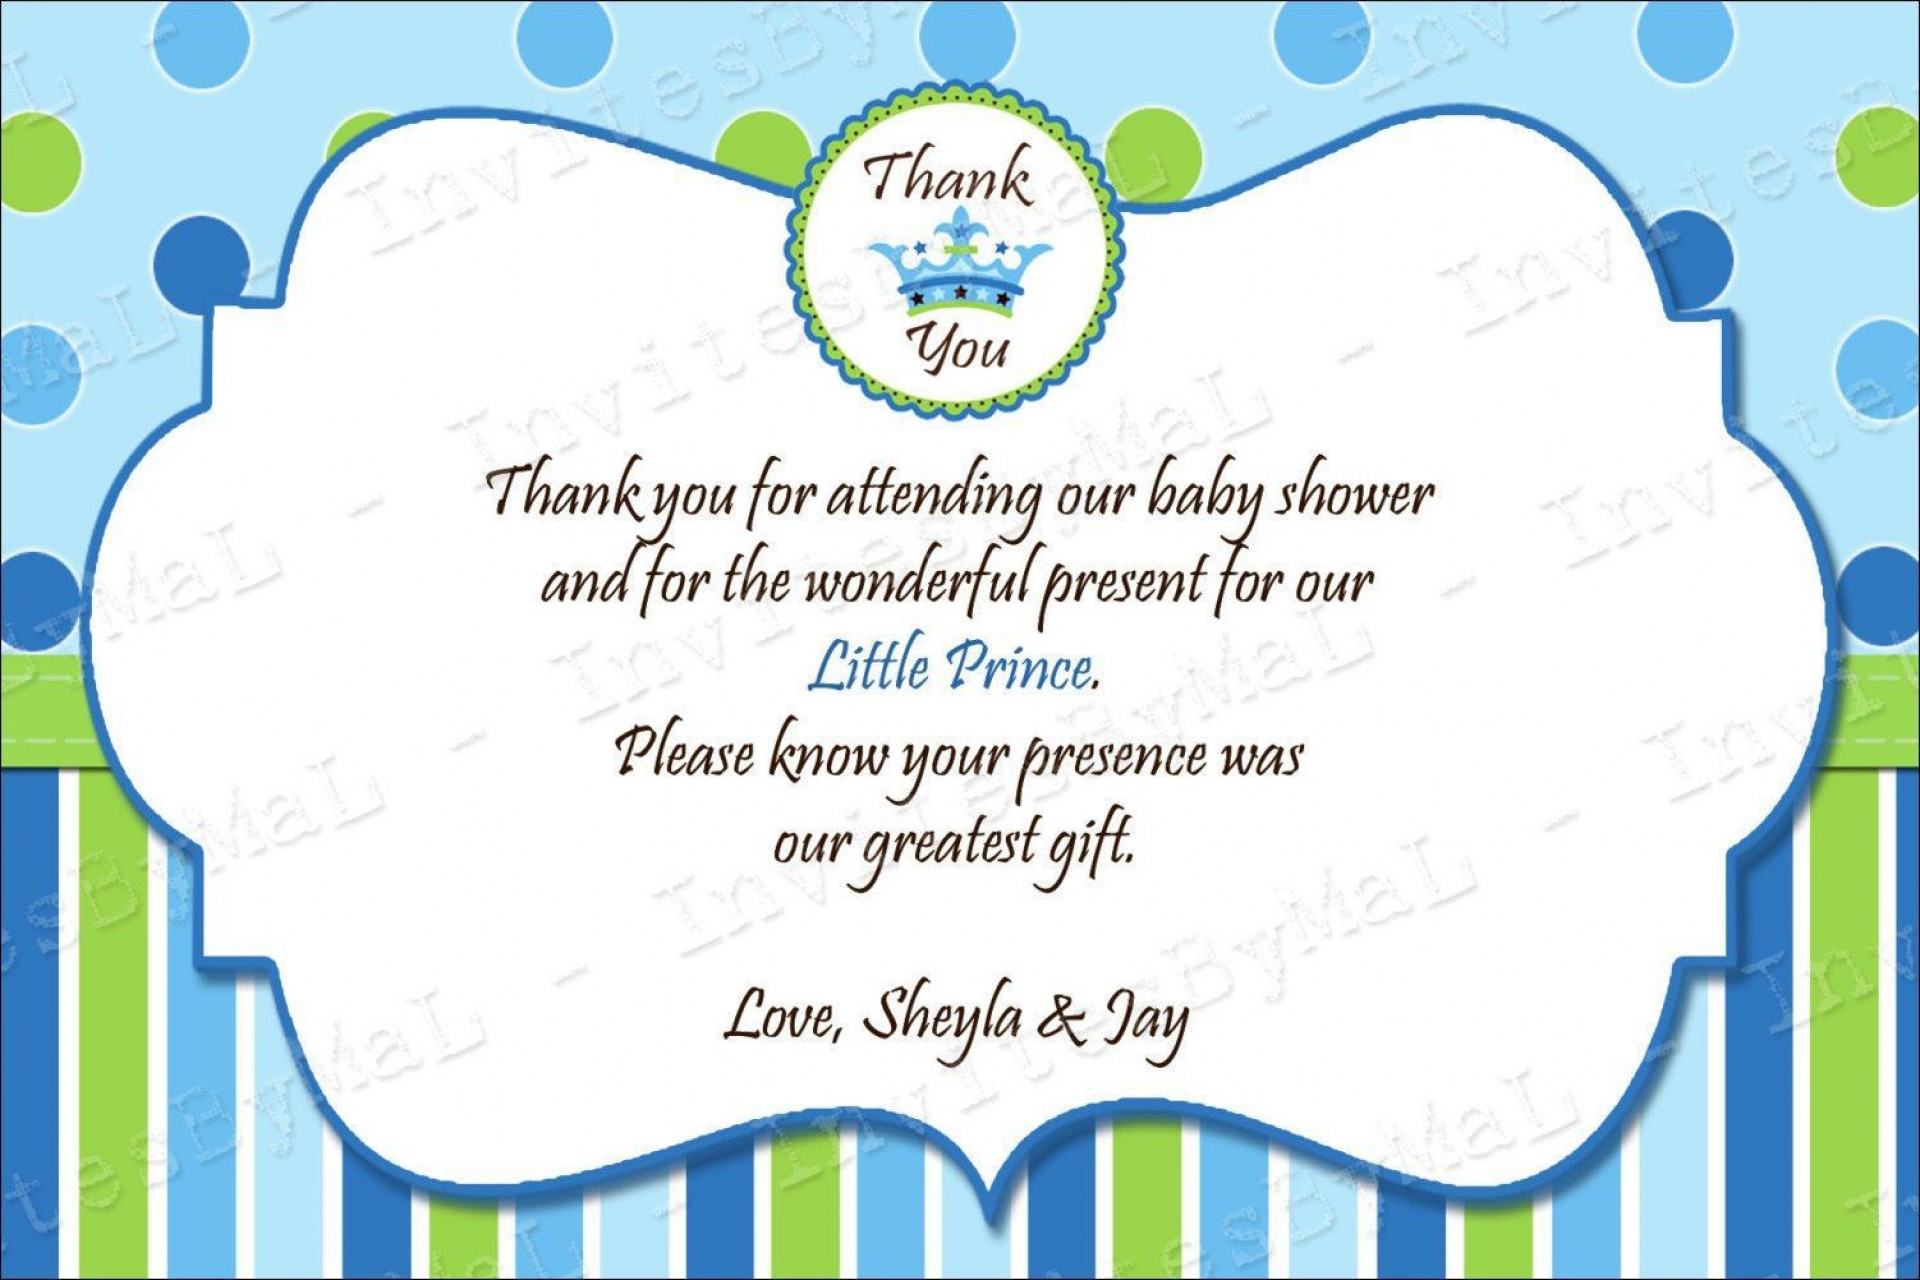 008 Unbelievable Thank You Note Wording For Baby Shower Gift Picture  Card Sample Example Letter1920